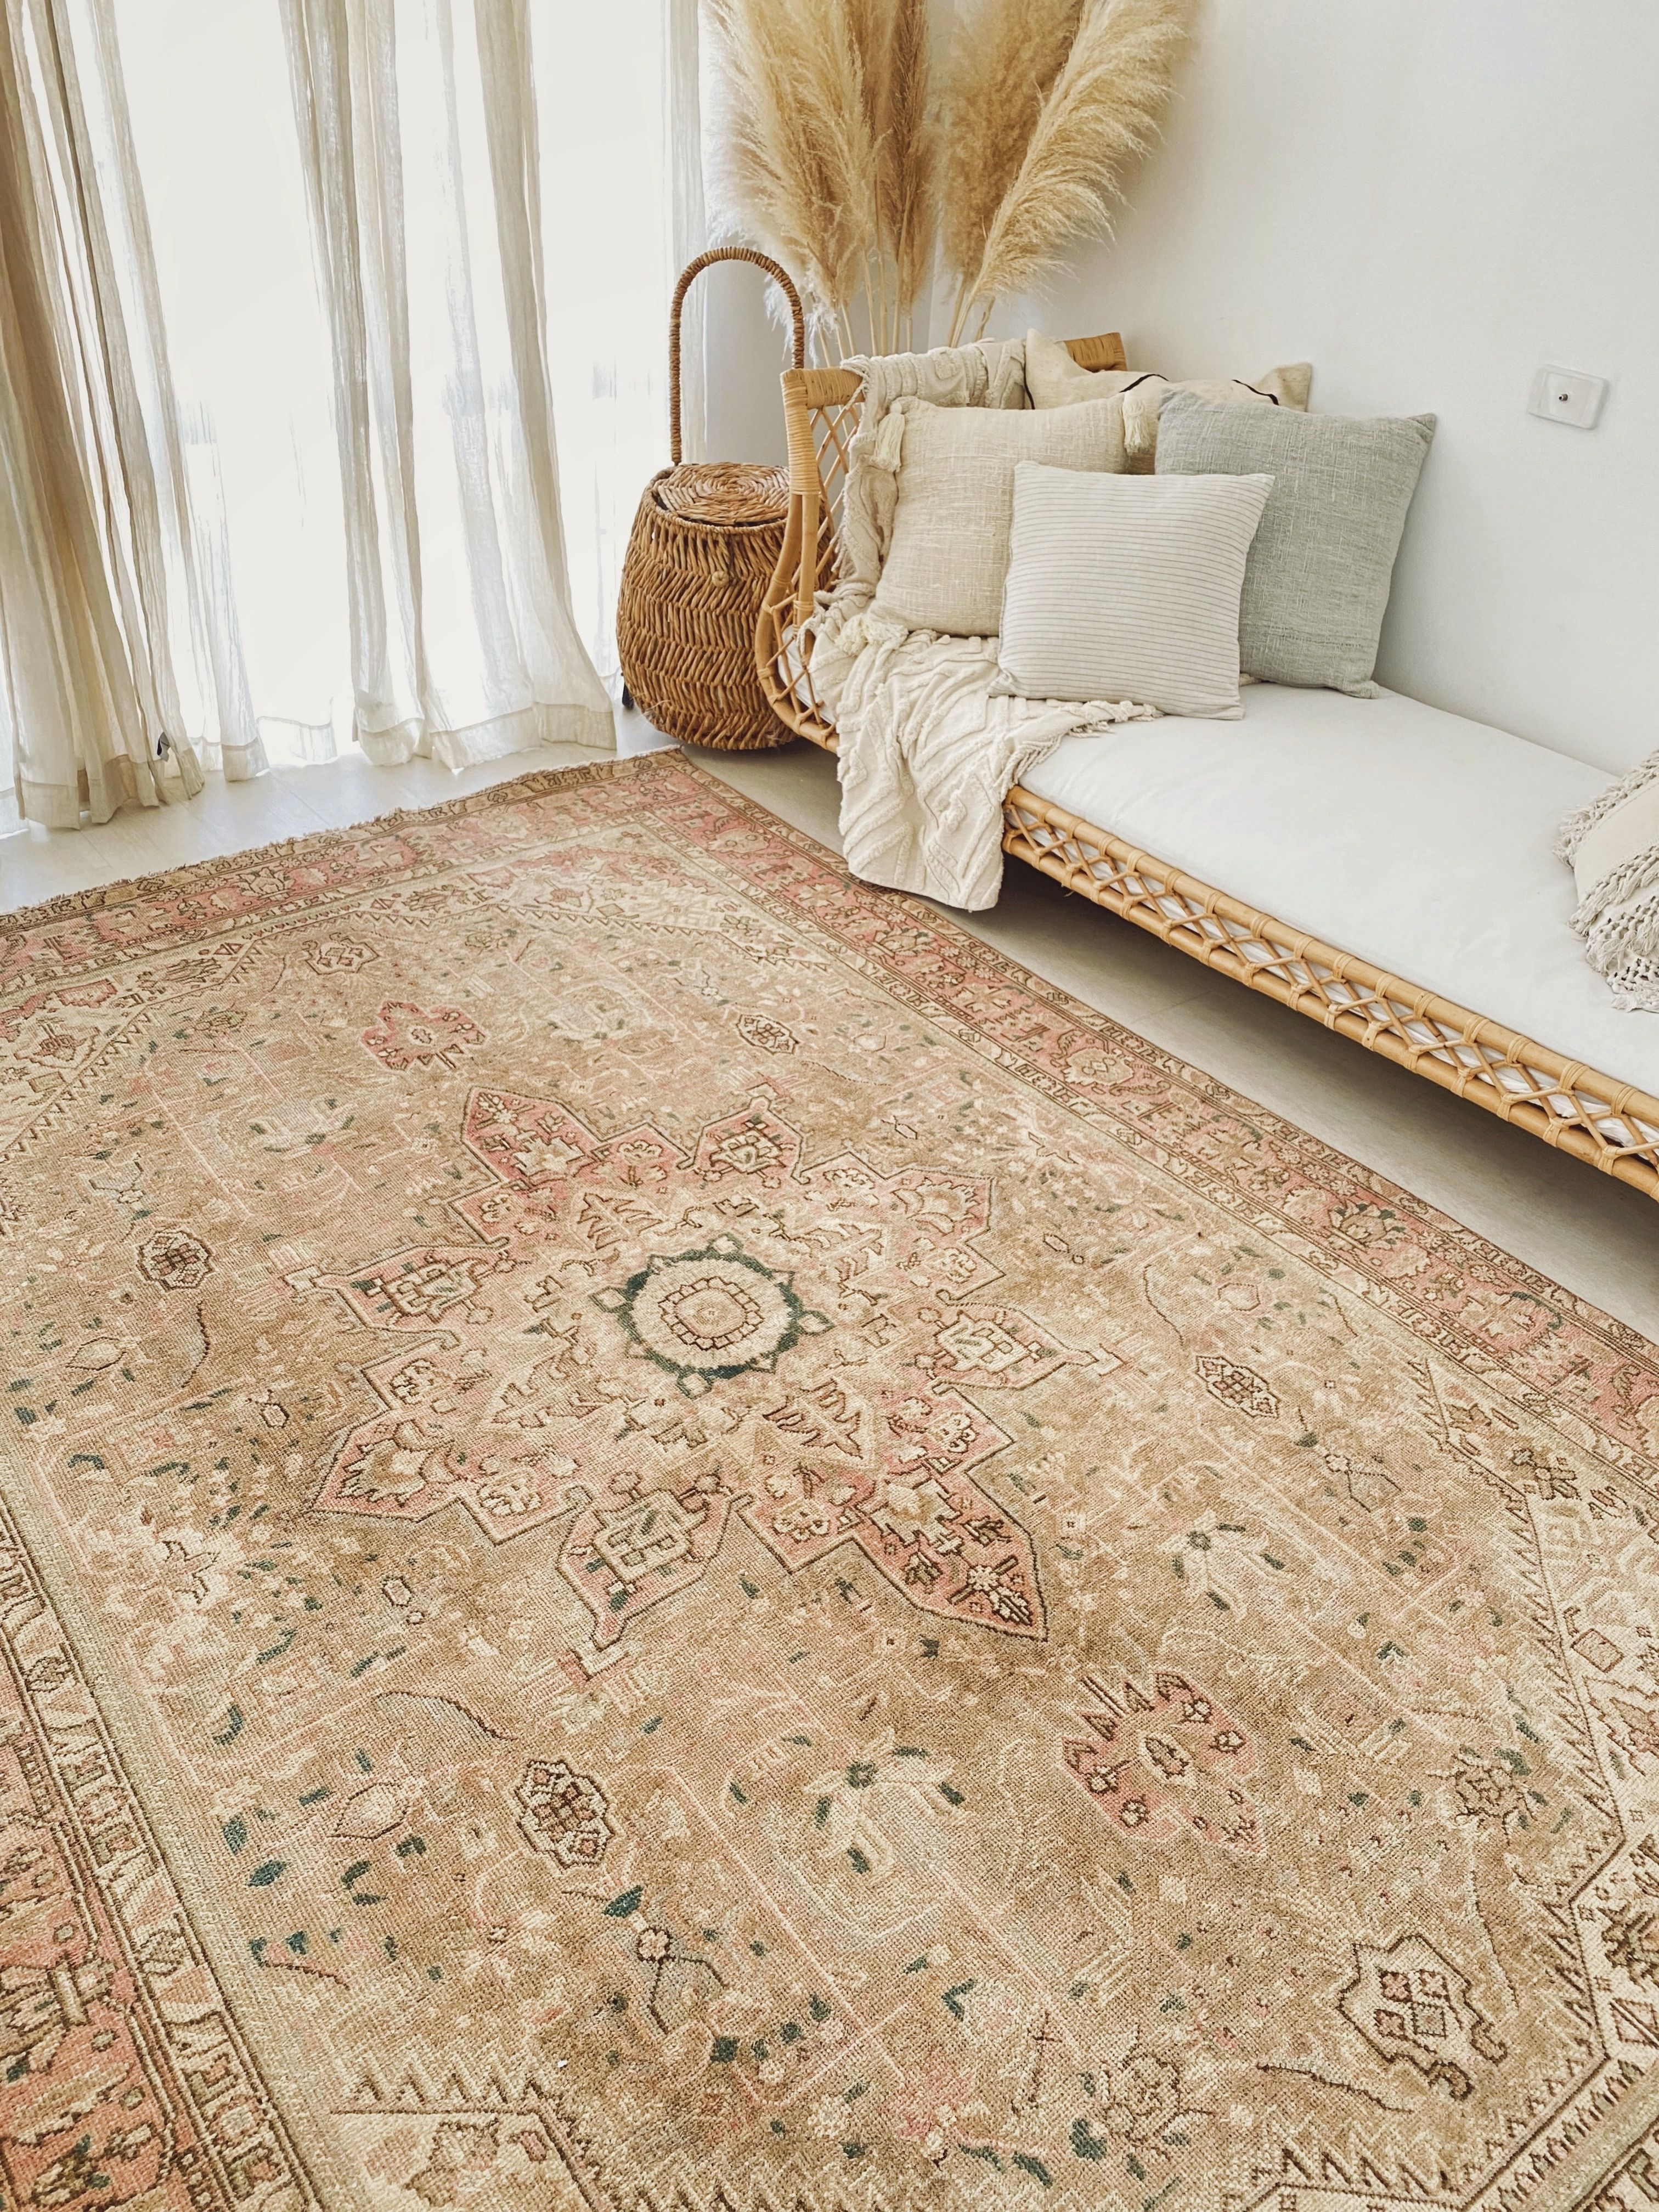 Manisa Oversized Blush Taupe Faded One Of A Kind Turkish Rug In